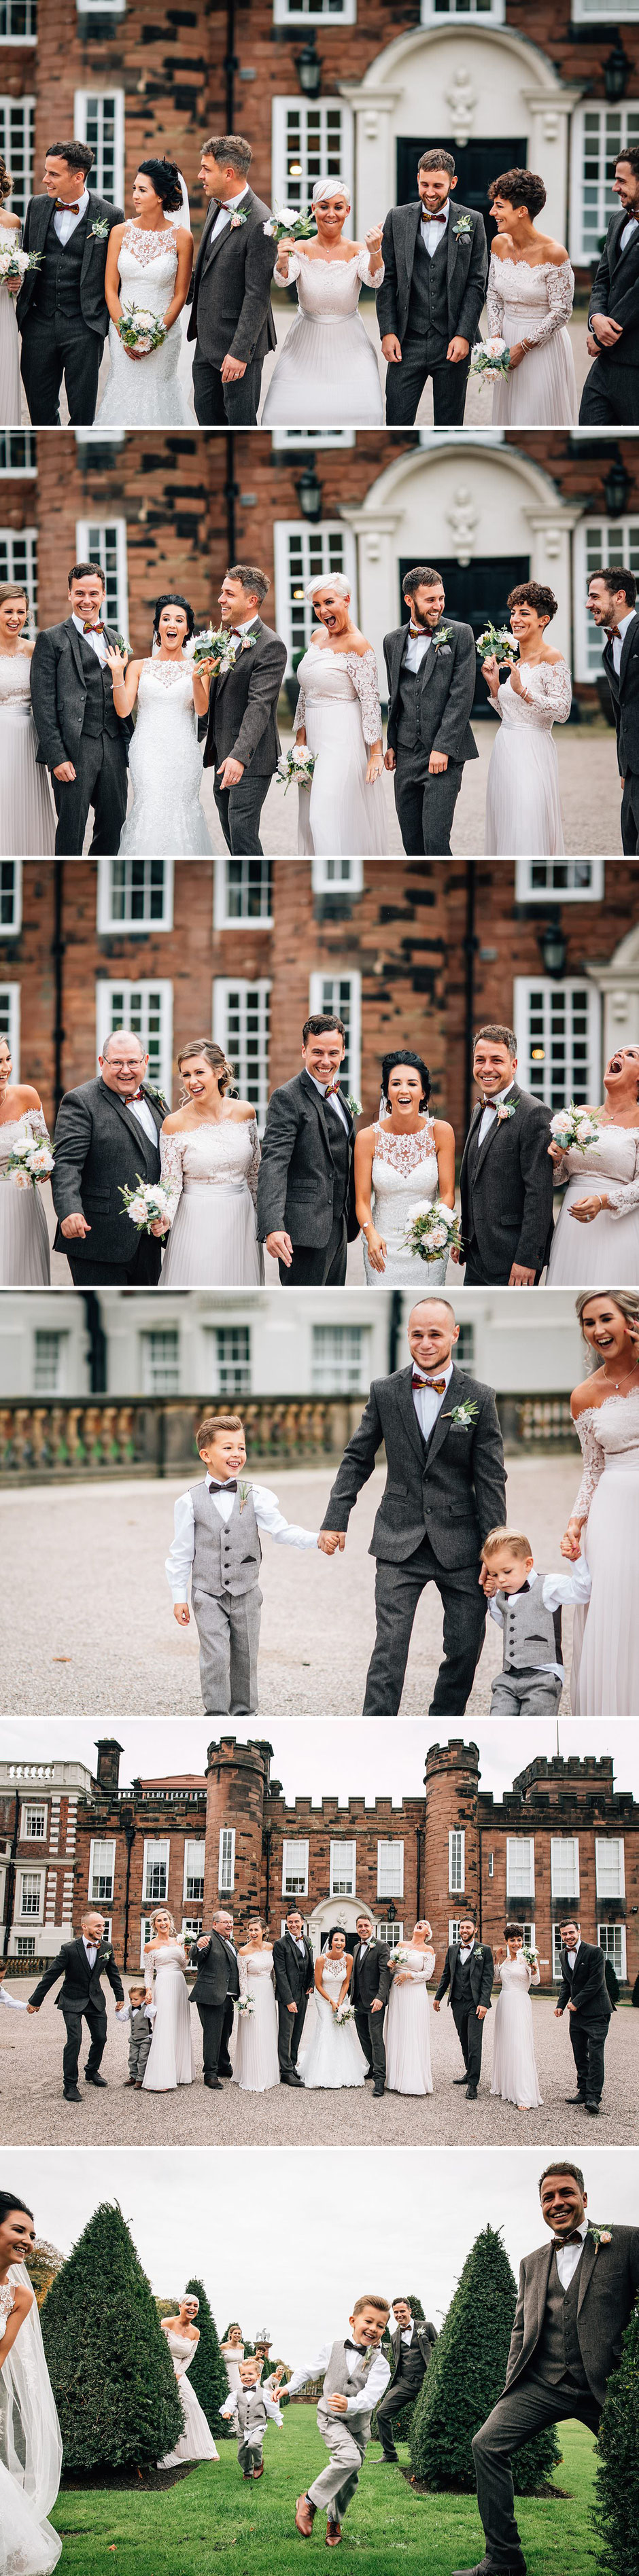 fun photographs of bridal and groom party posing